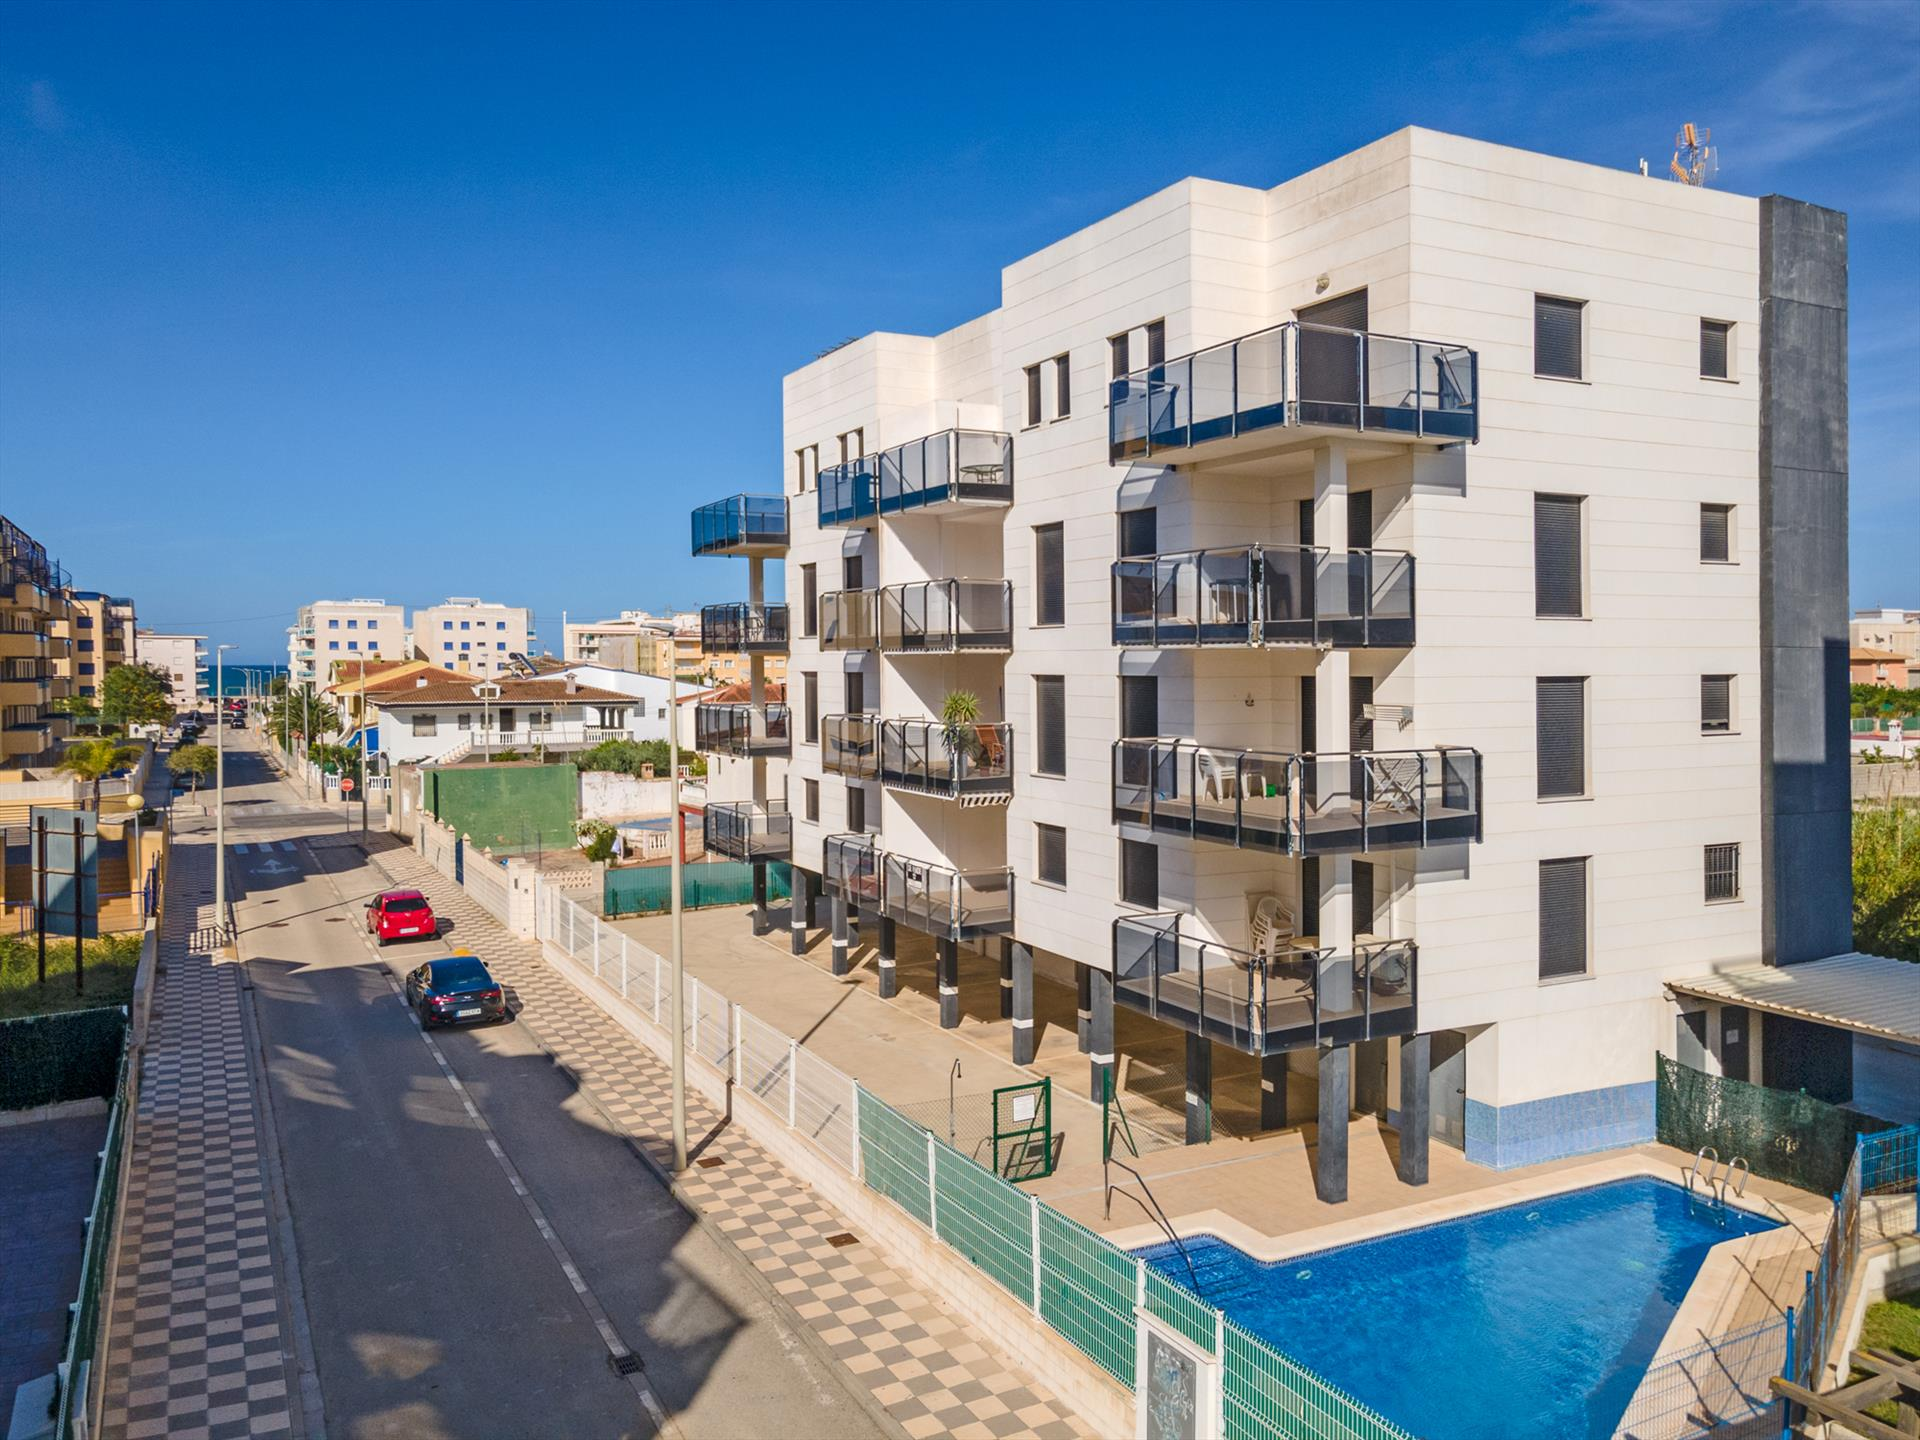 Mar de Bellreguard Migjorn AP9, Beautiful and cheerful apartment in Bellreguard, on the Costa Blanca, Spain  with communal pool for 6 persons.....